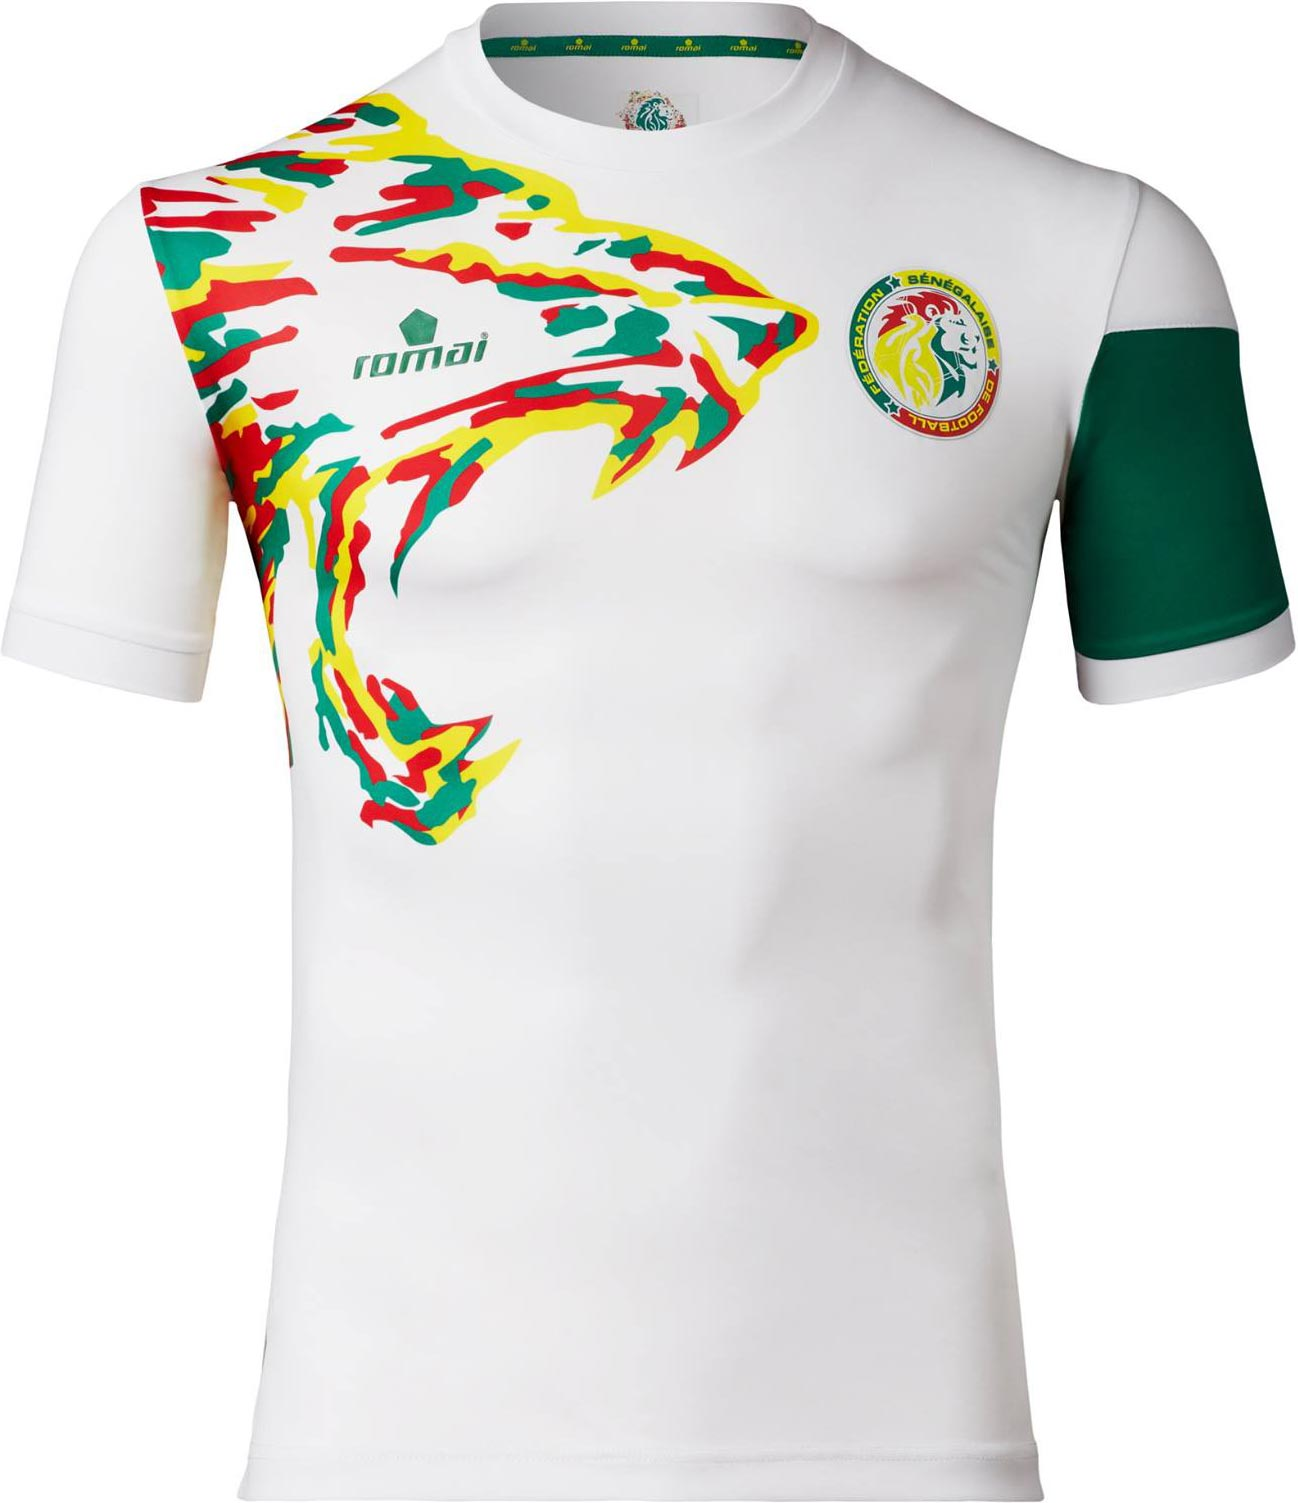 senegal-2017-afcon-home-and-away-kits-7.jpg